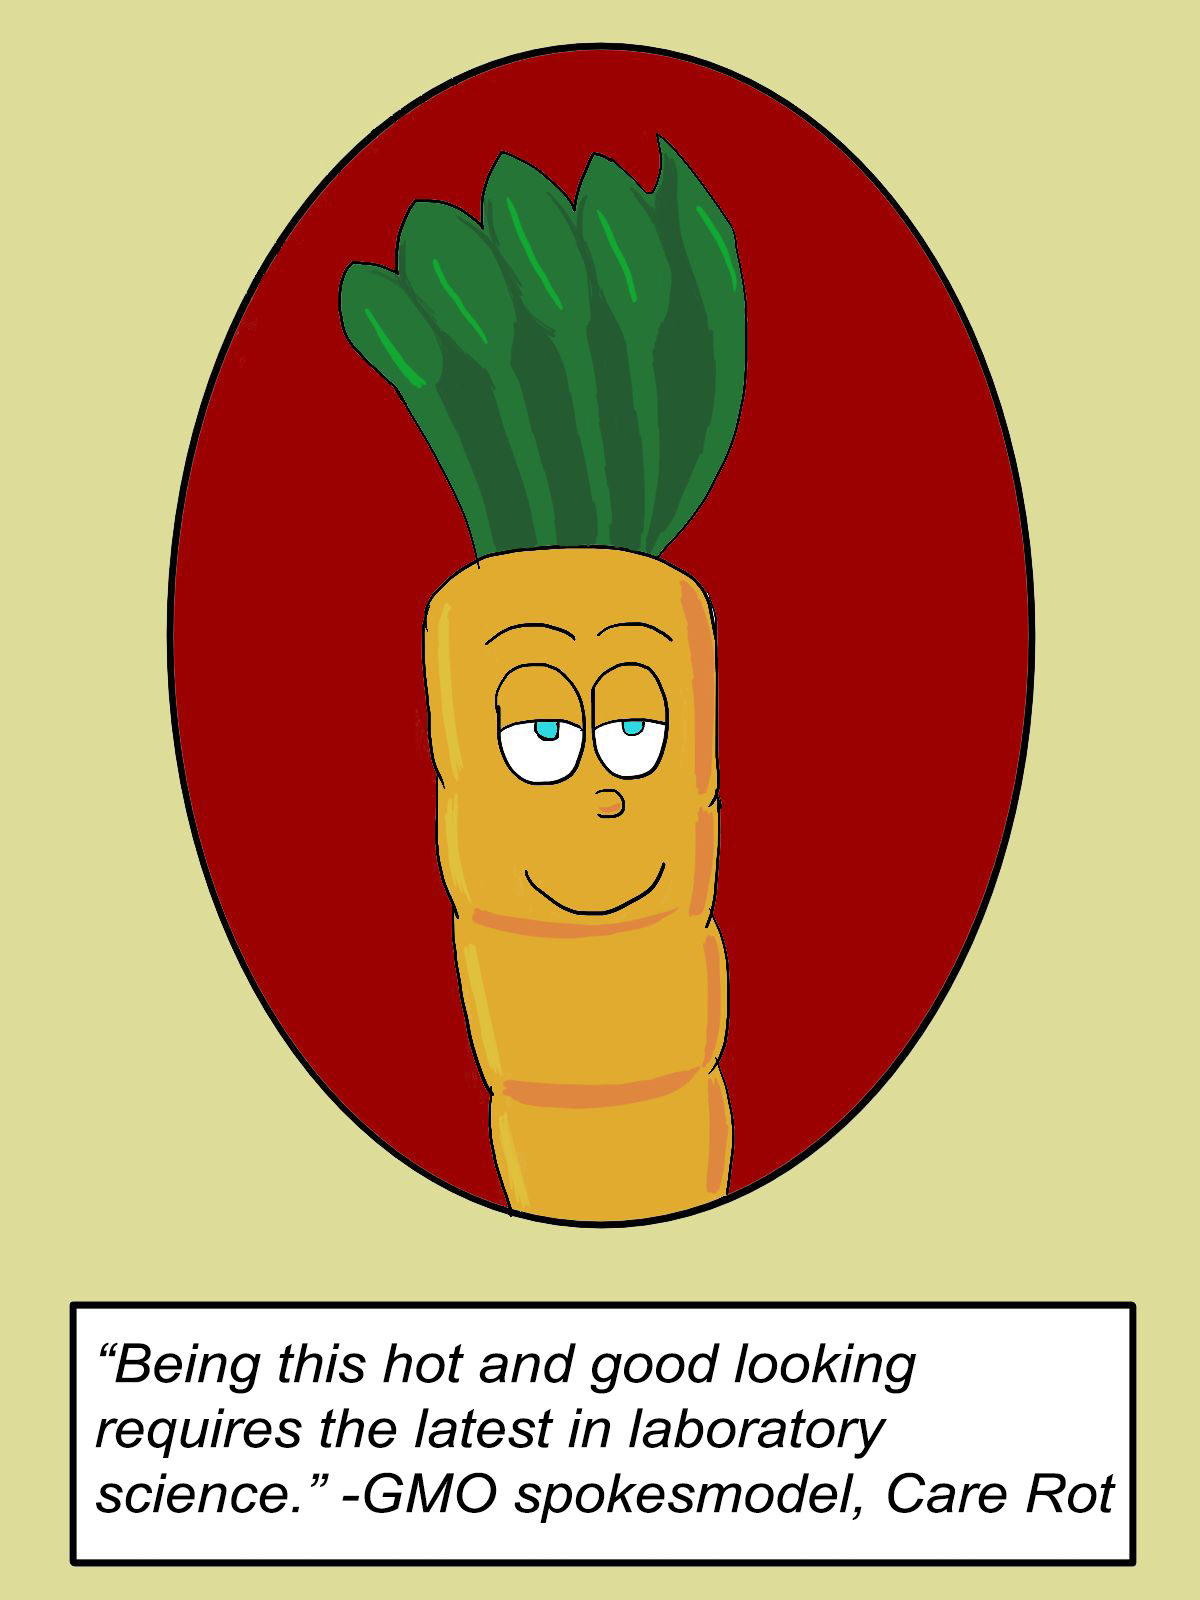 Comic of GMO carrot saying his good looks are thanks to laboratory science.